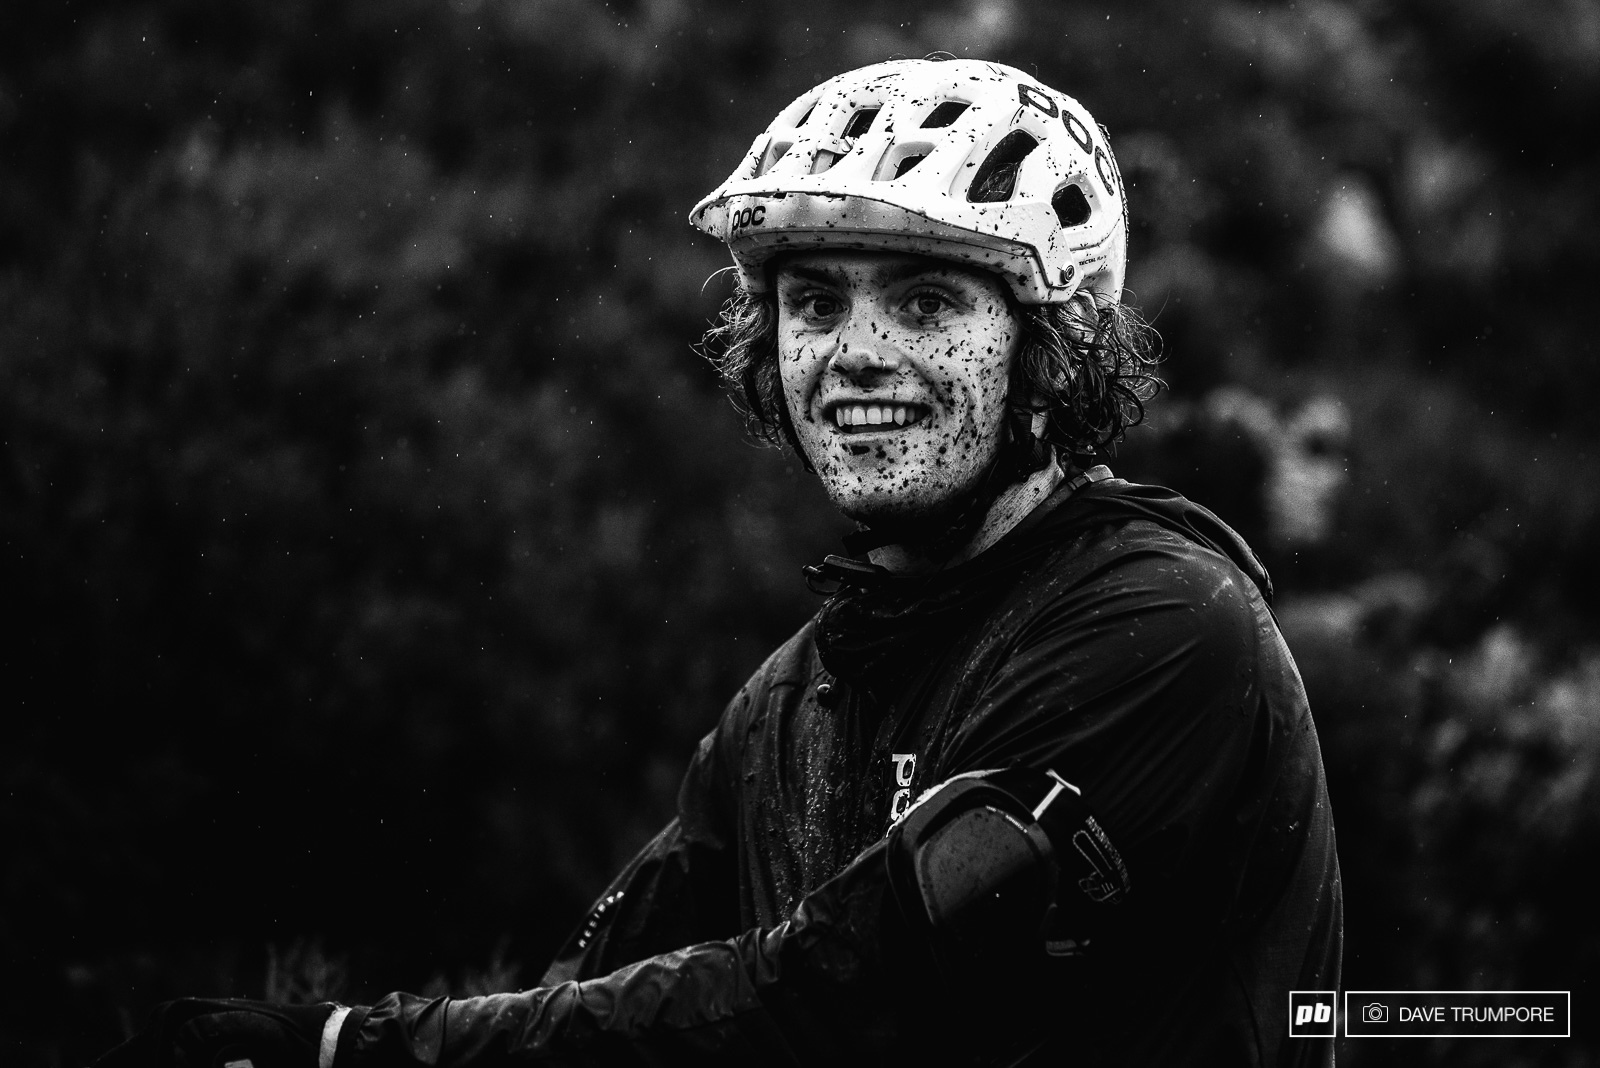 Another day on the Enduro Wet Series Tour. When the weather gets foul you might as well just smile and enjoy the ride.